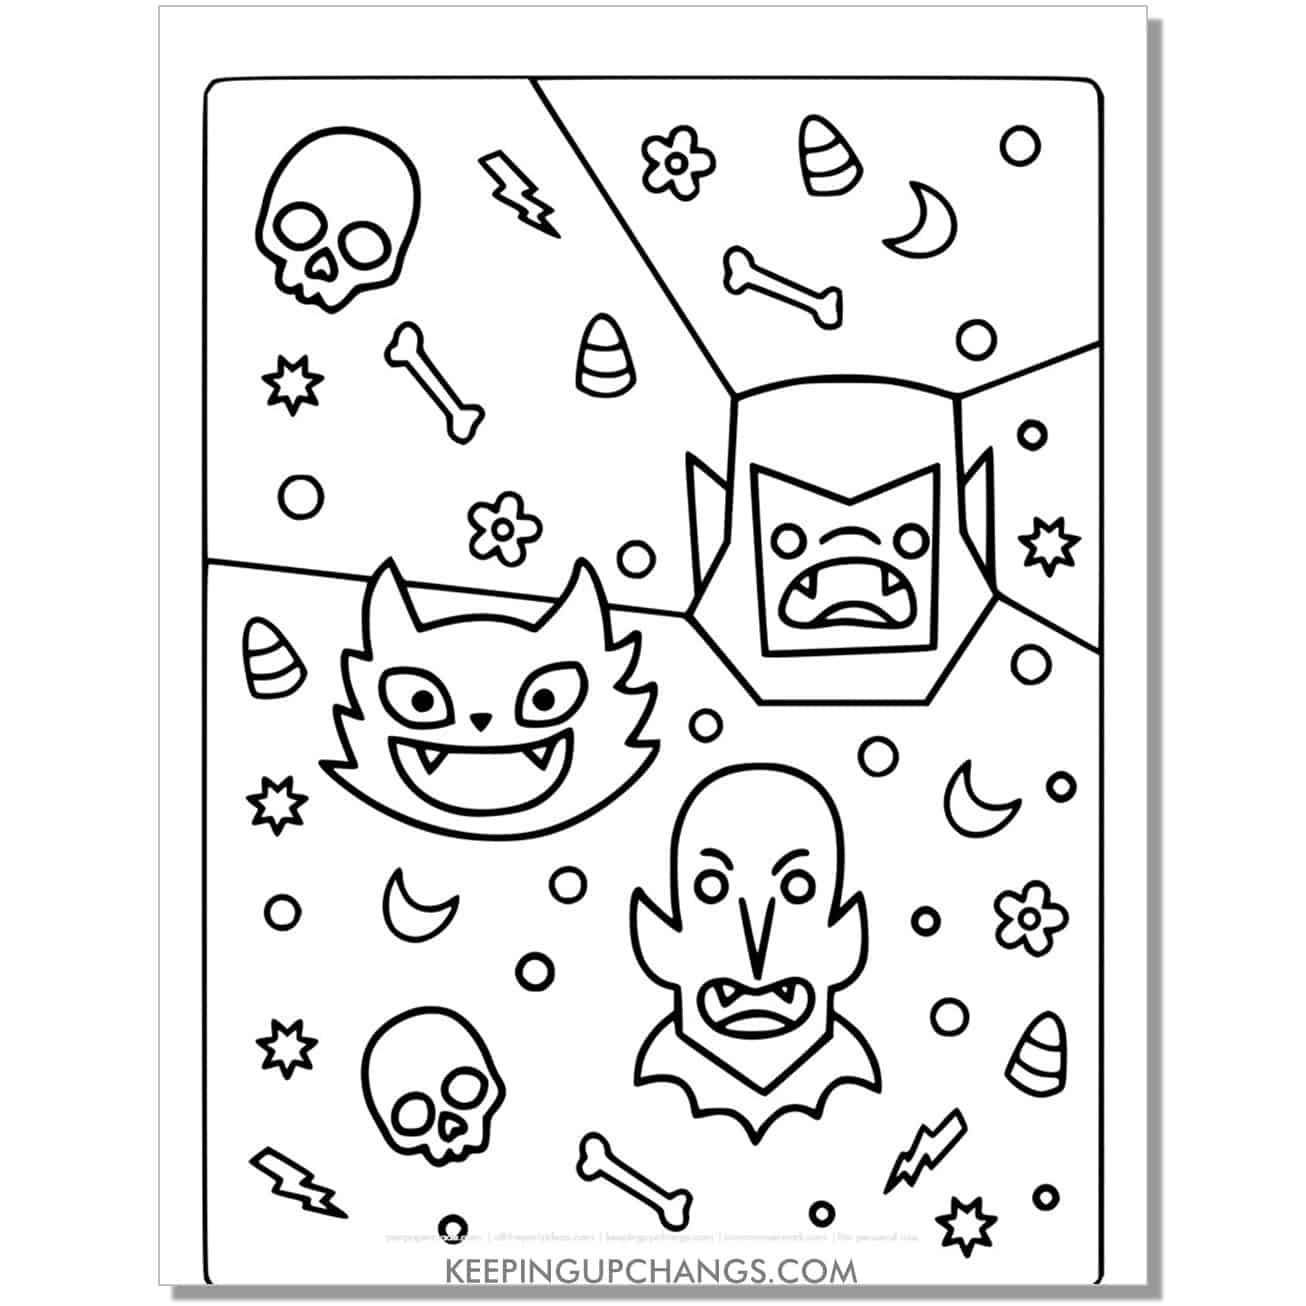 full size halloween cat, bat, vampire coloring page.